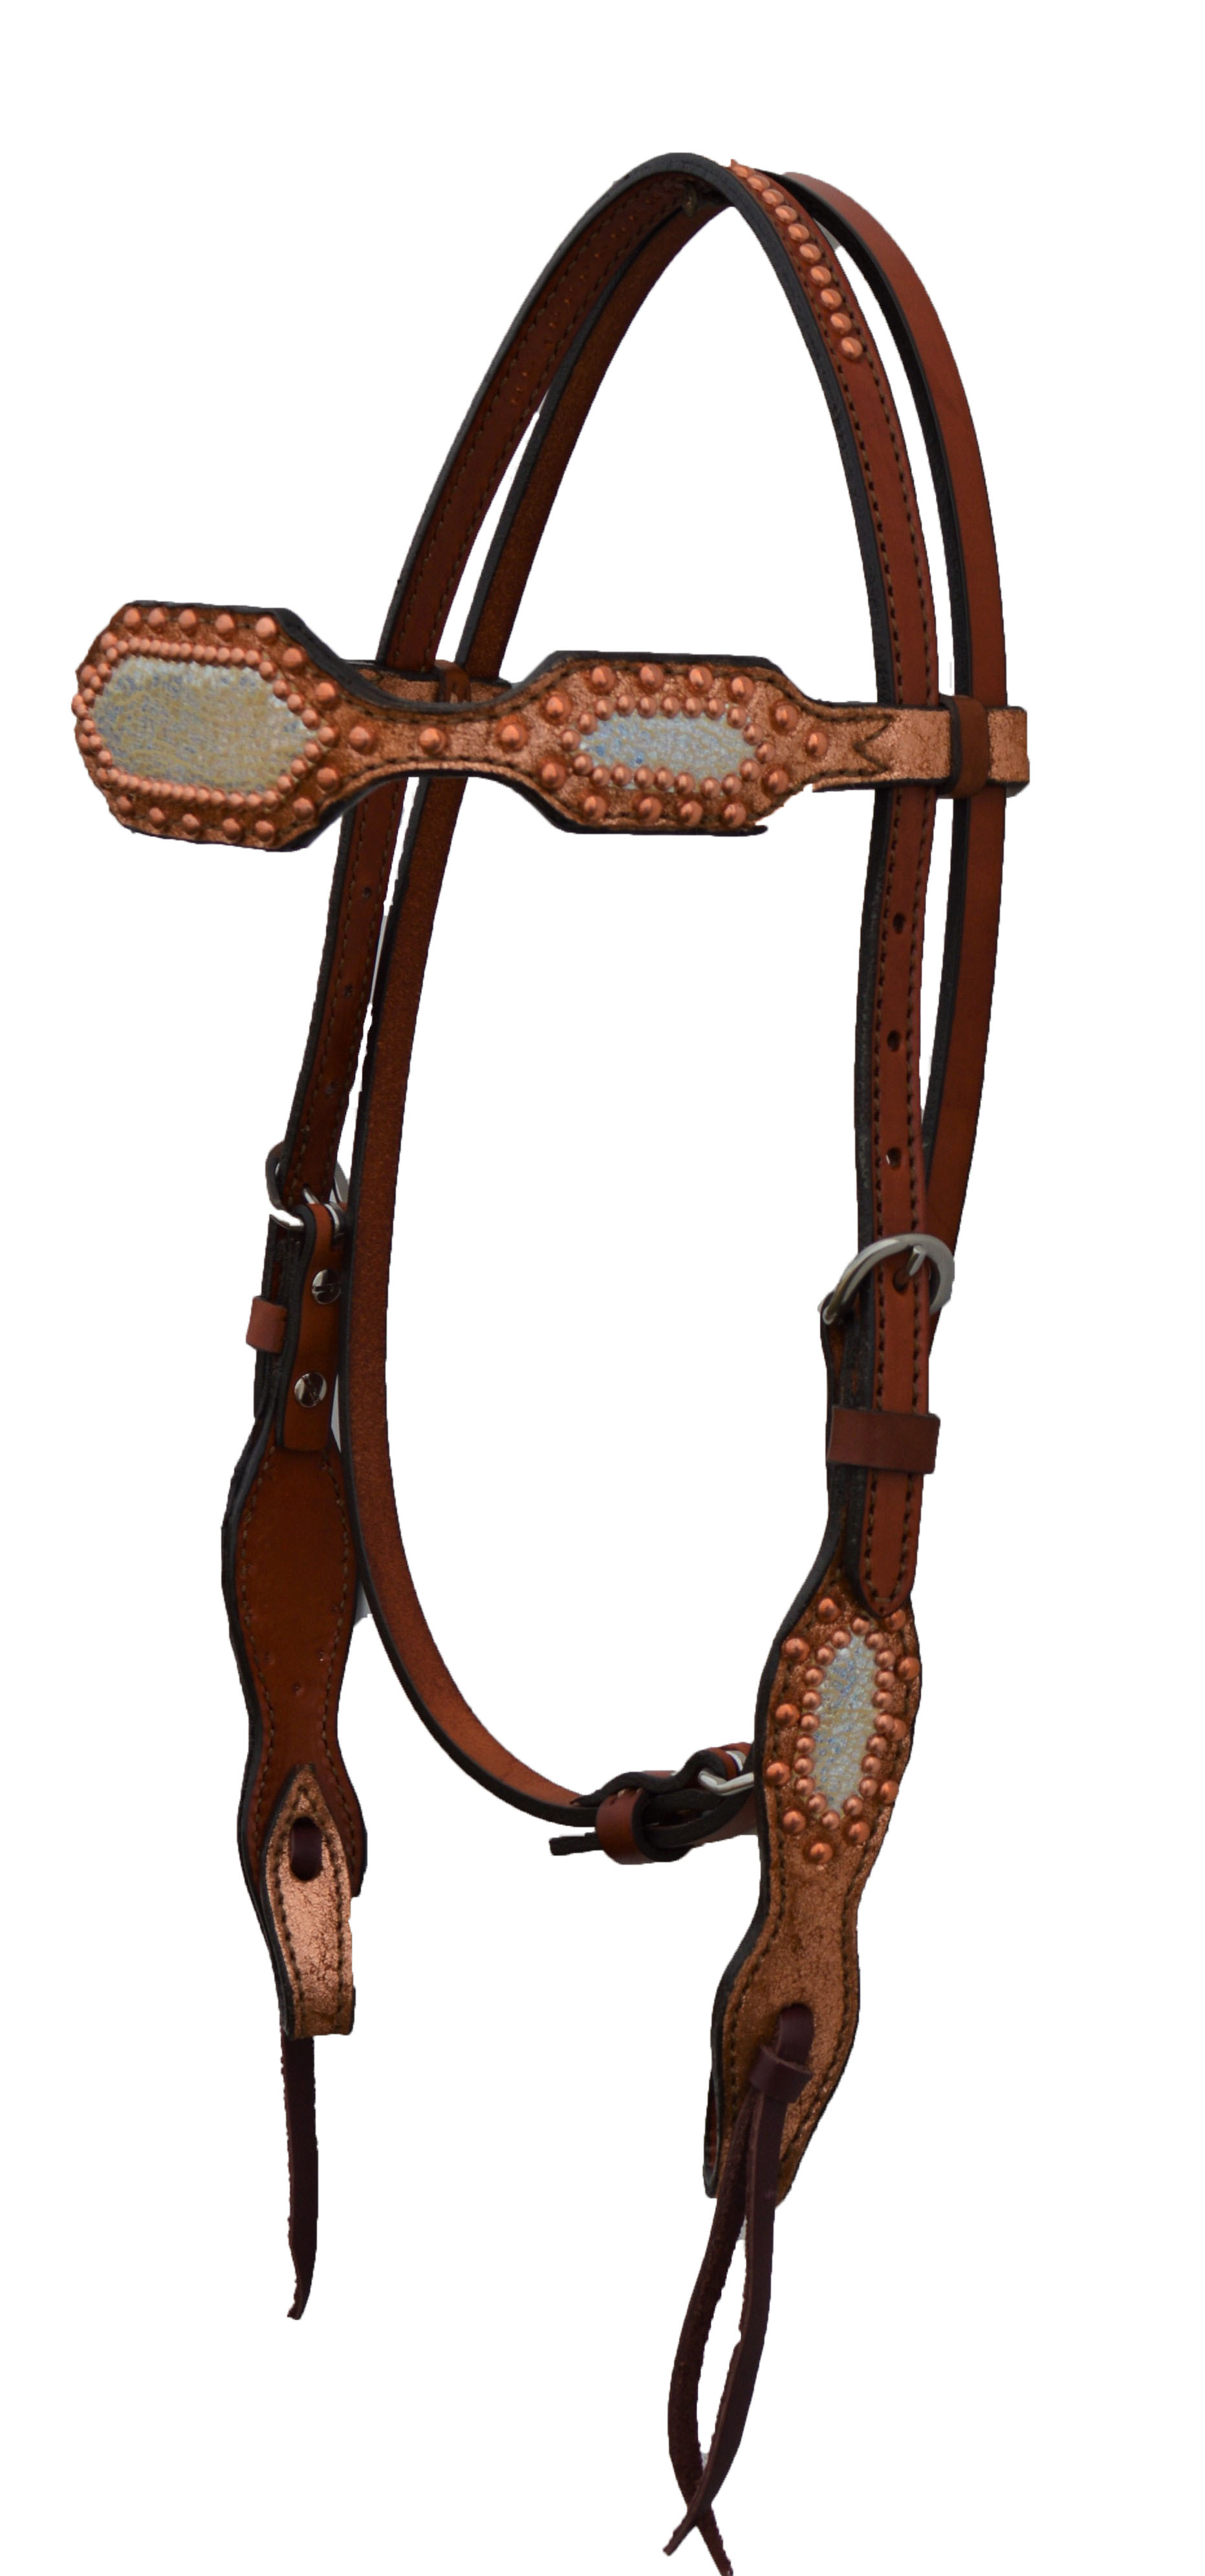 2285-IC HEADSTALL WITH TOAST IRIDESCENT BACKGROUND AND IVORY IRIDESCENT OVERLAY